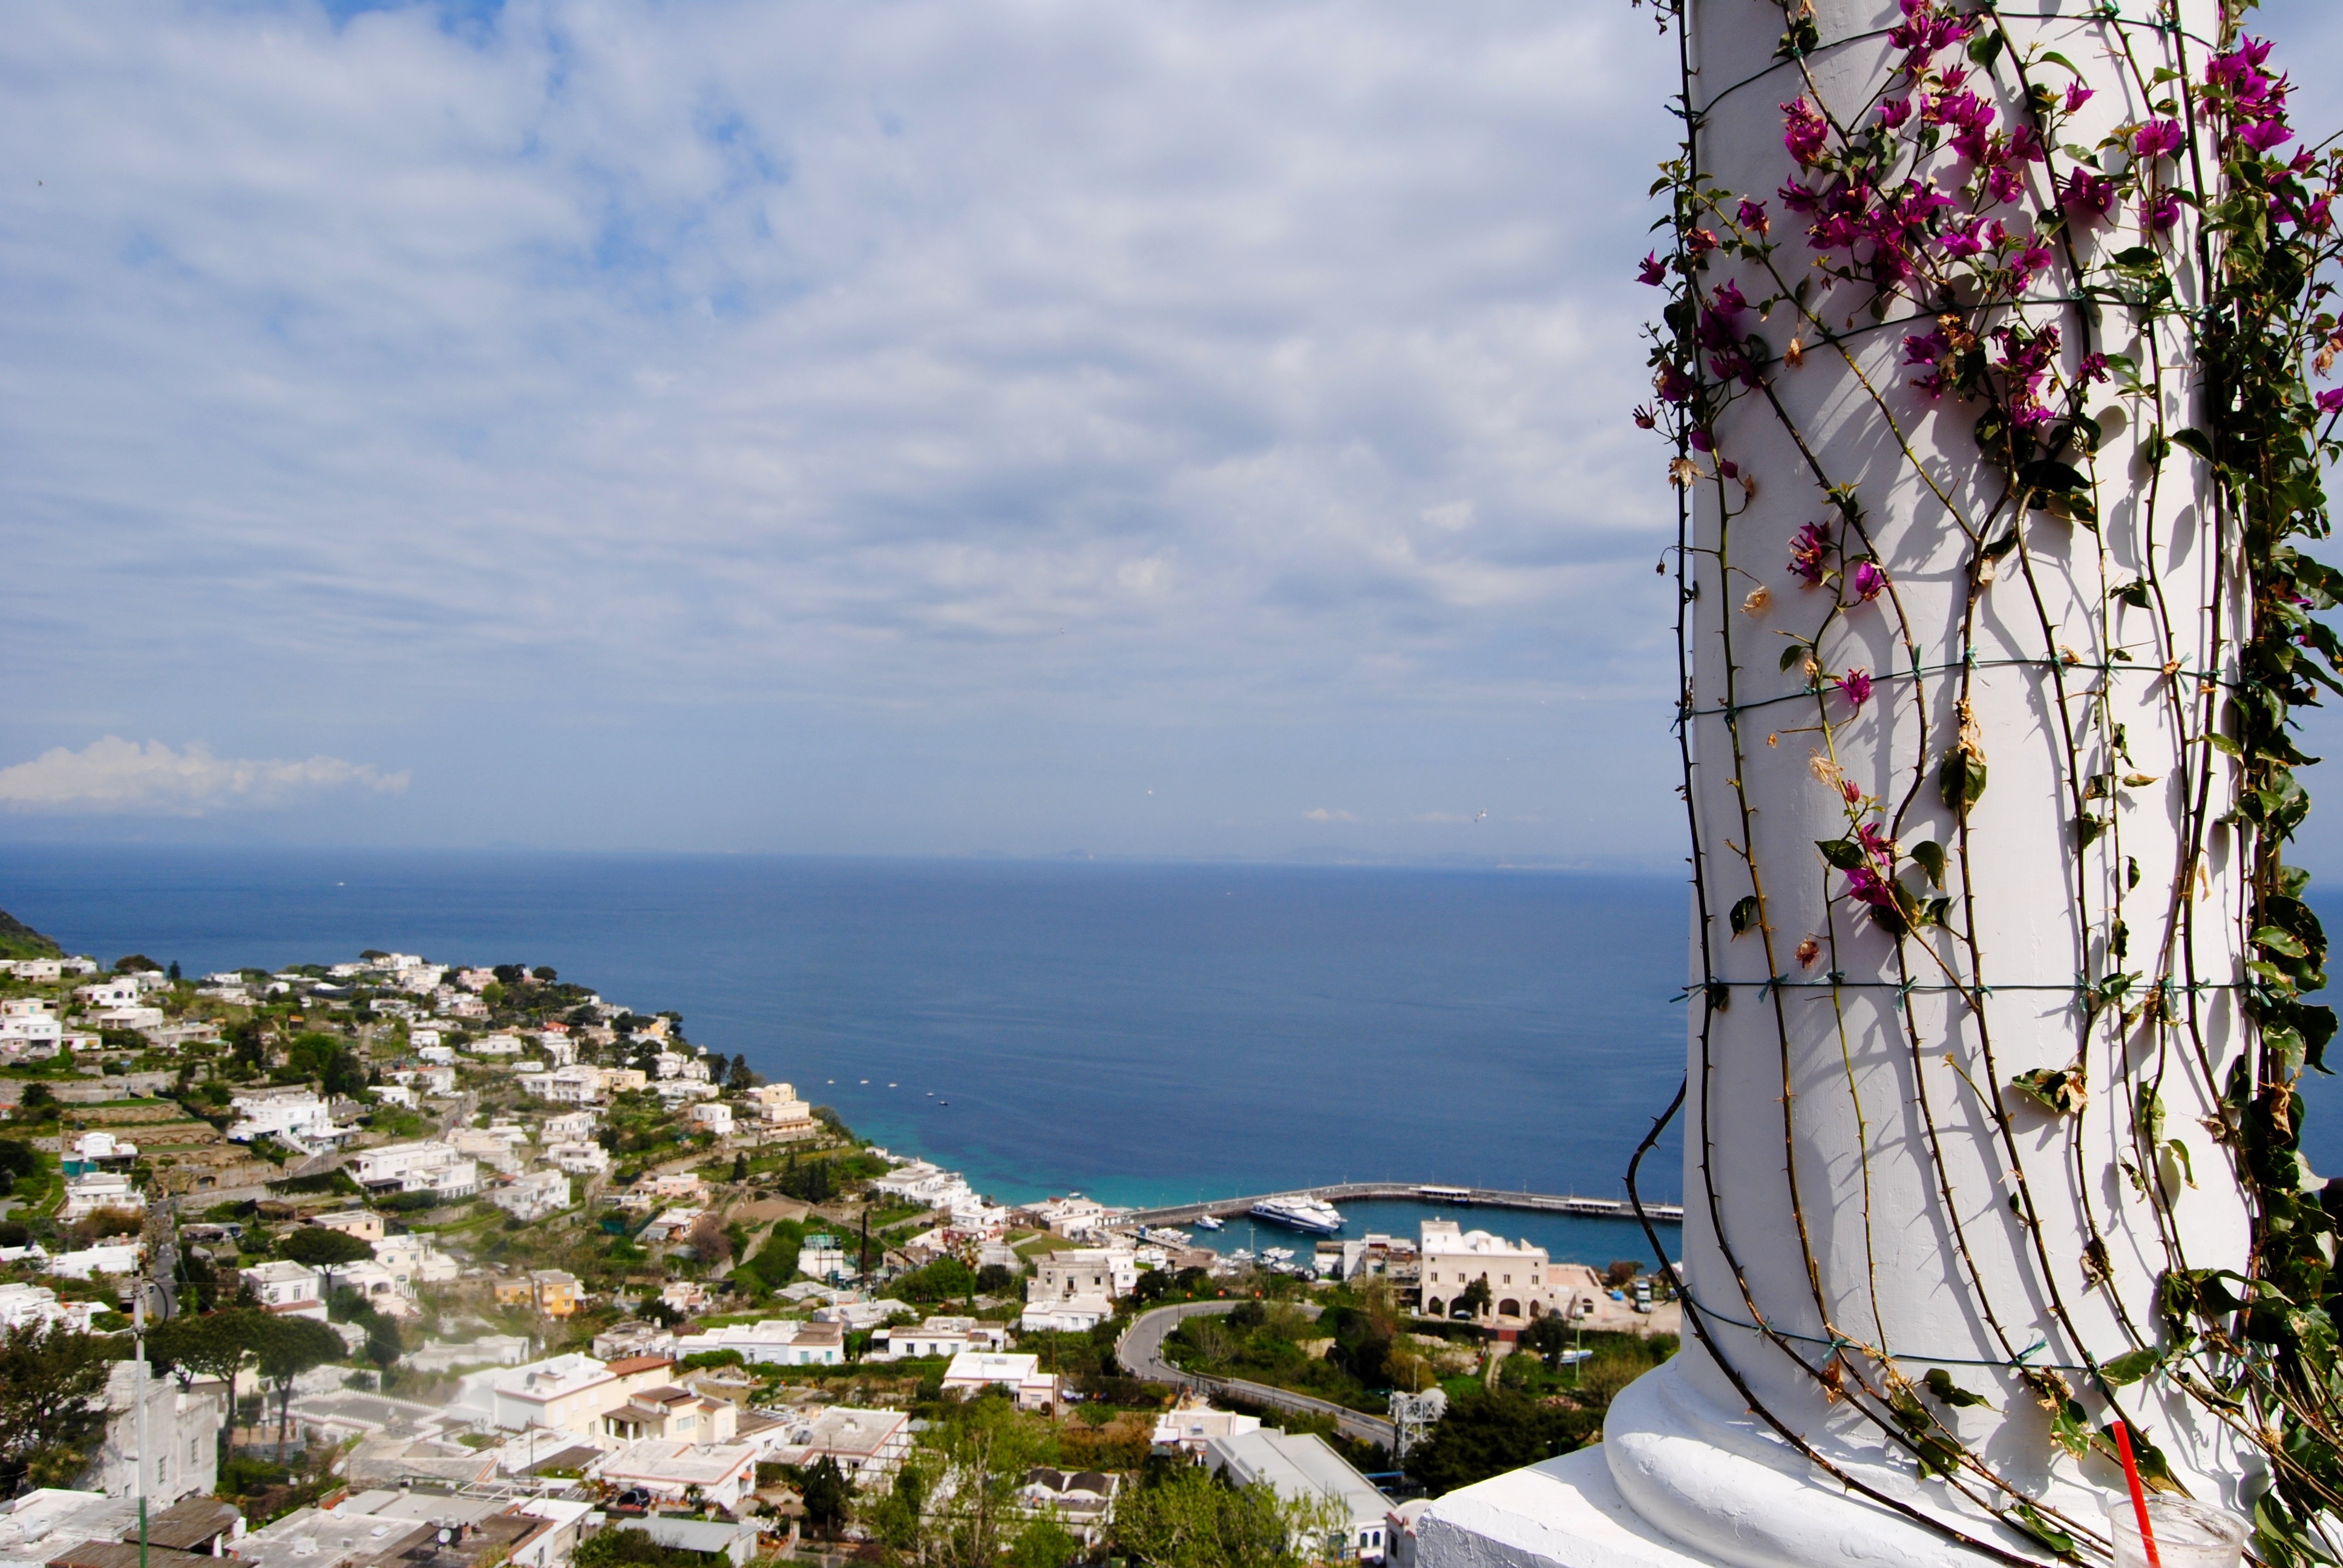 The view from Capri.